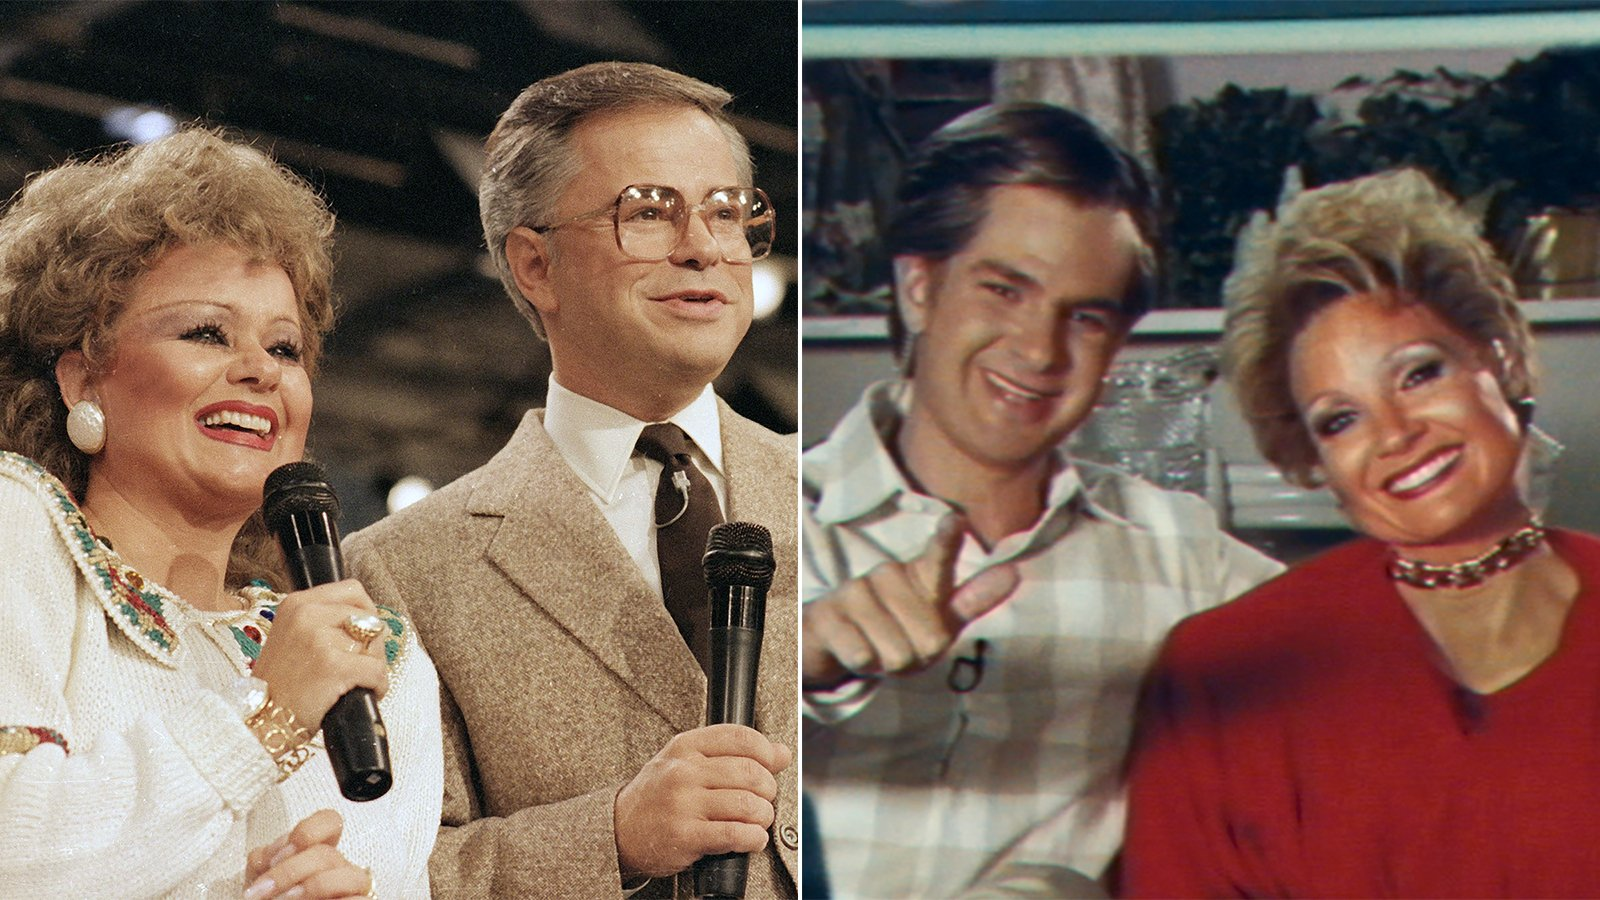 """Jim and Tammy Faye Bakker, left, in Aug 1986. Actors Andrew Garfield and Jessica Chastain as the famous televangelist couple in the upcoming biopic, """"The Eyes of Tammy Faye."""" (AP Photo/Lou Krasky, left; Photo courtesy Searchlight Pictures)"""